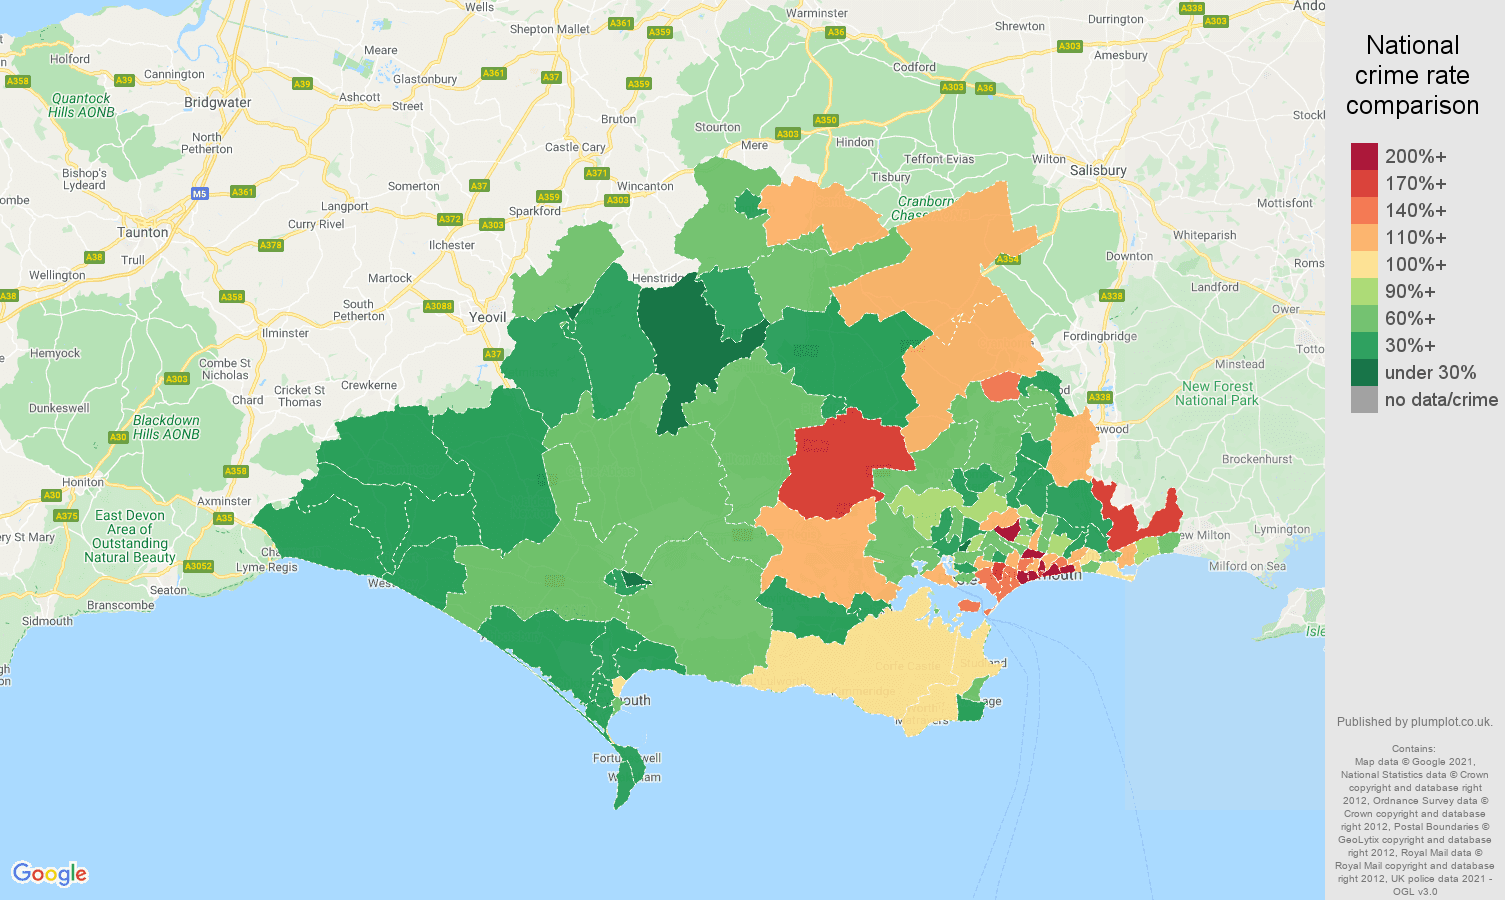 Dorset burglary crime rate comparison map